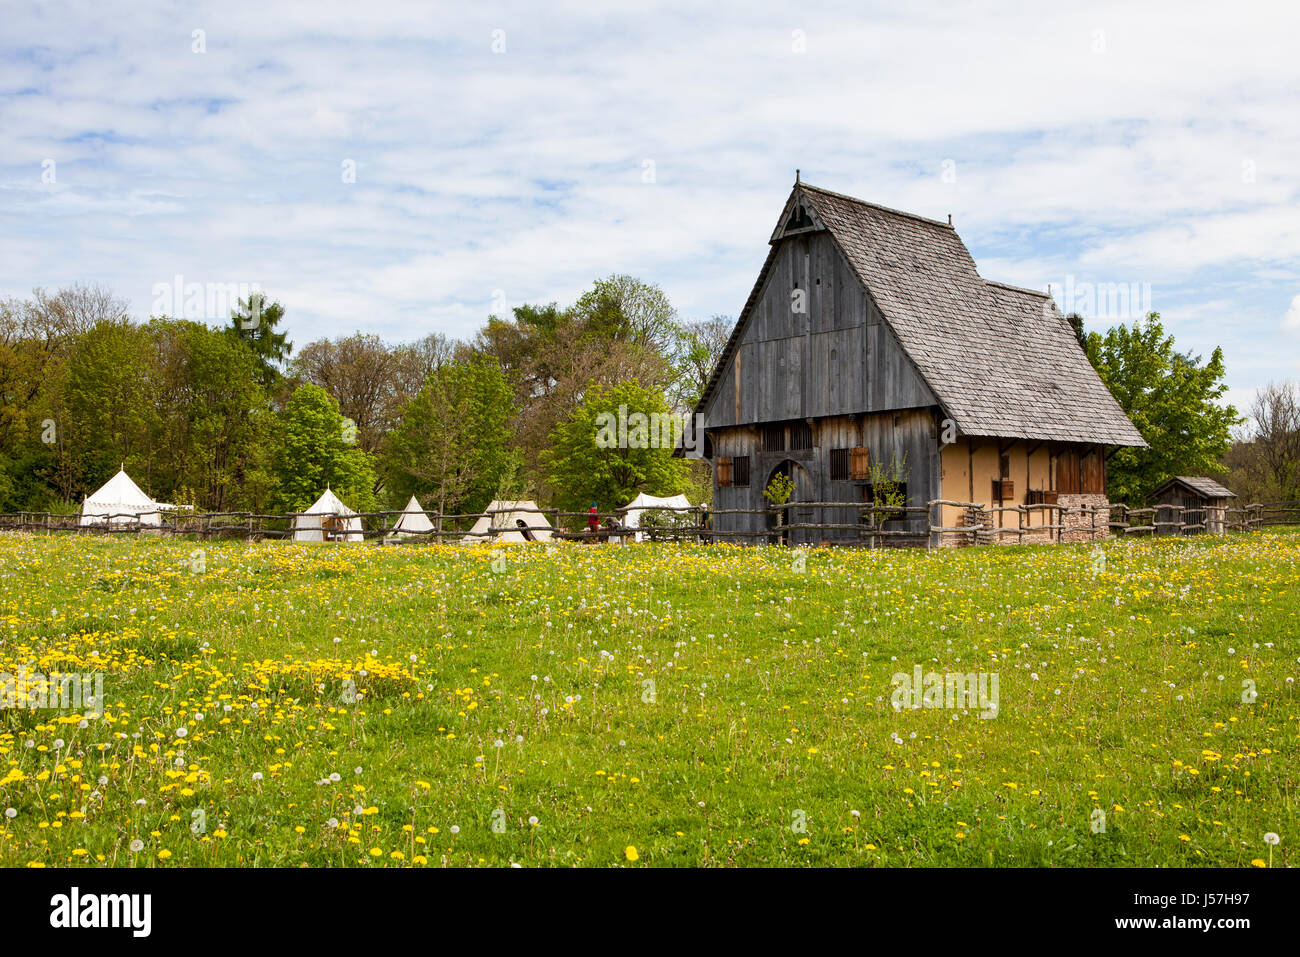 The reconstructed medieval house, Nienover, Bodenfelde, Lower Saxony, Germany Stock Photo